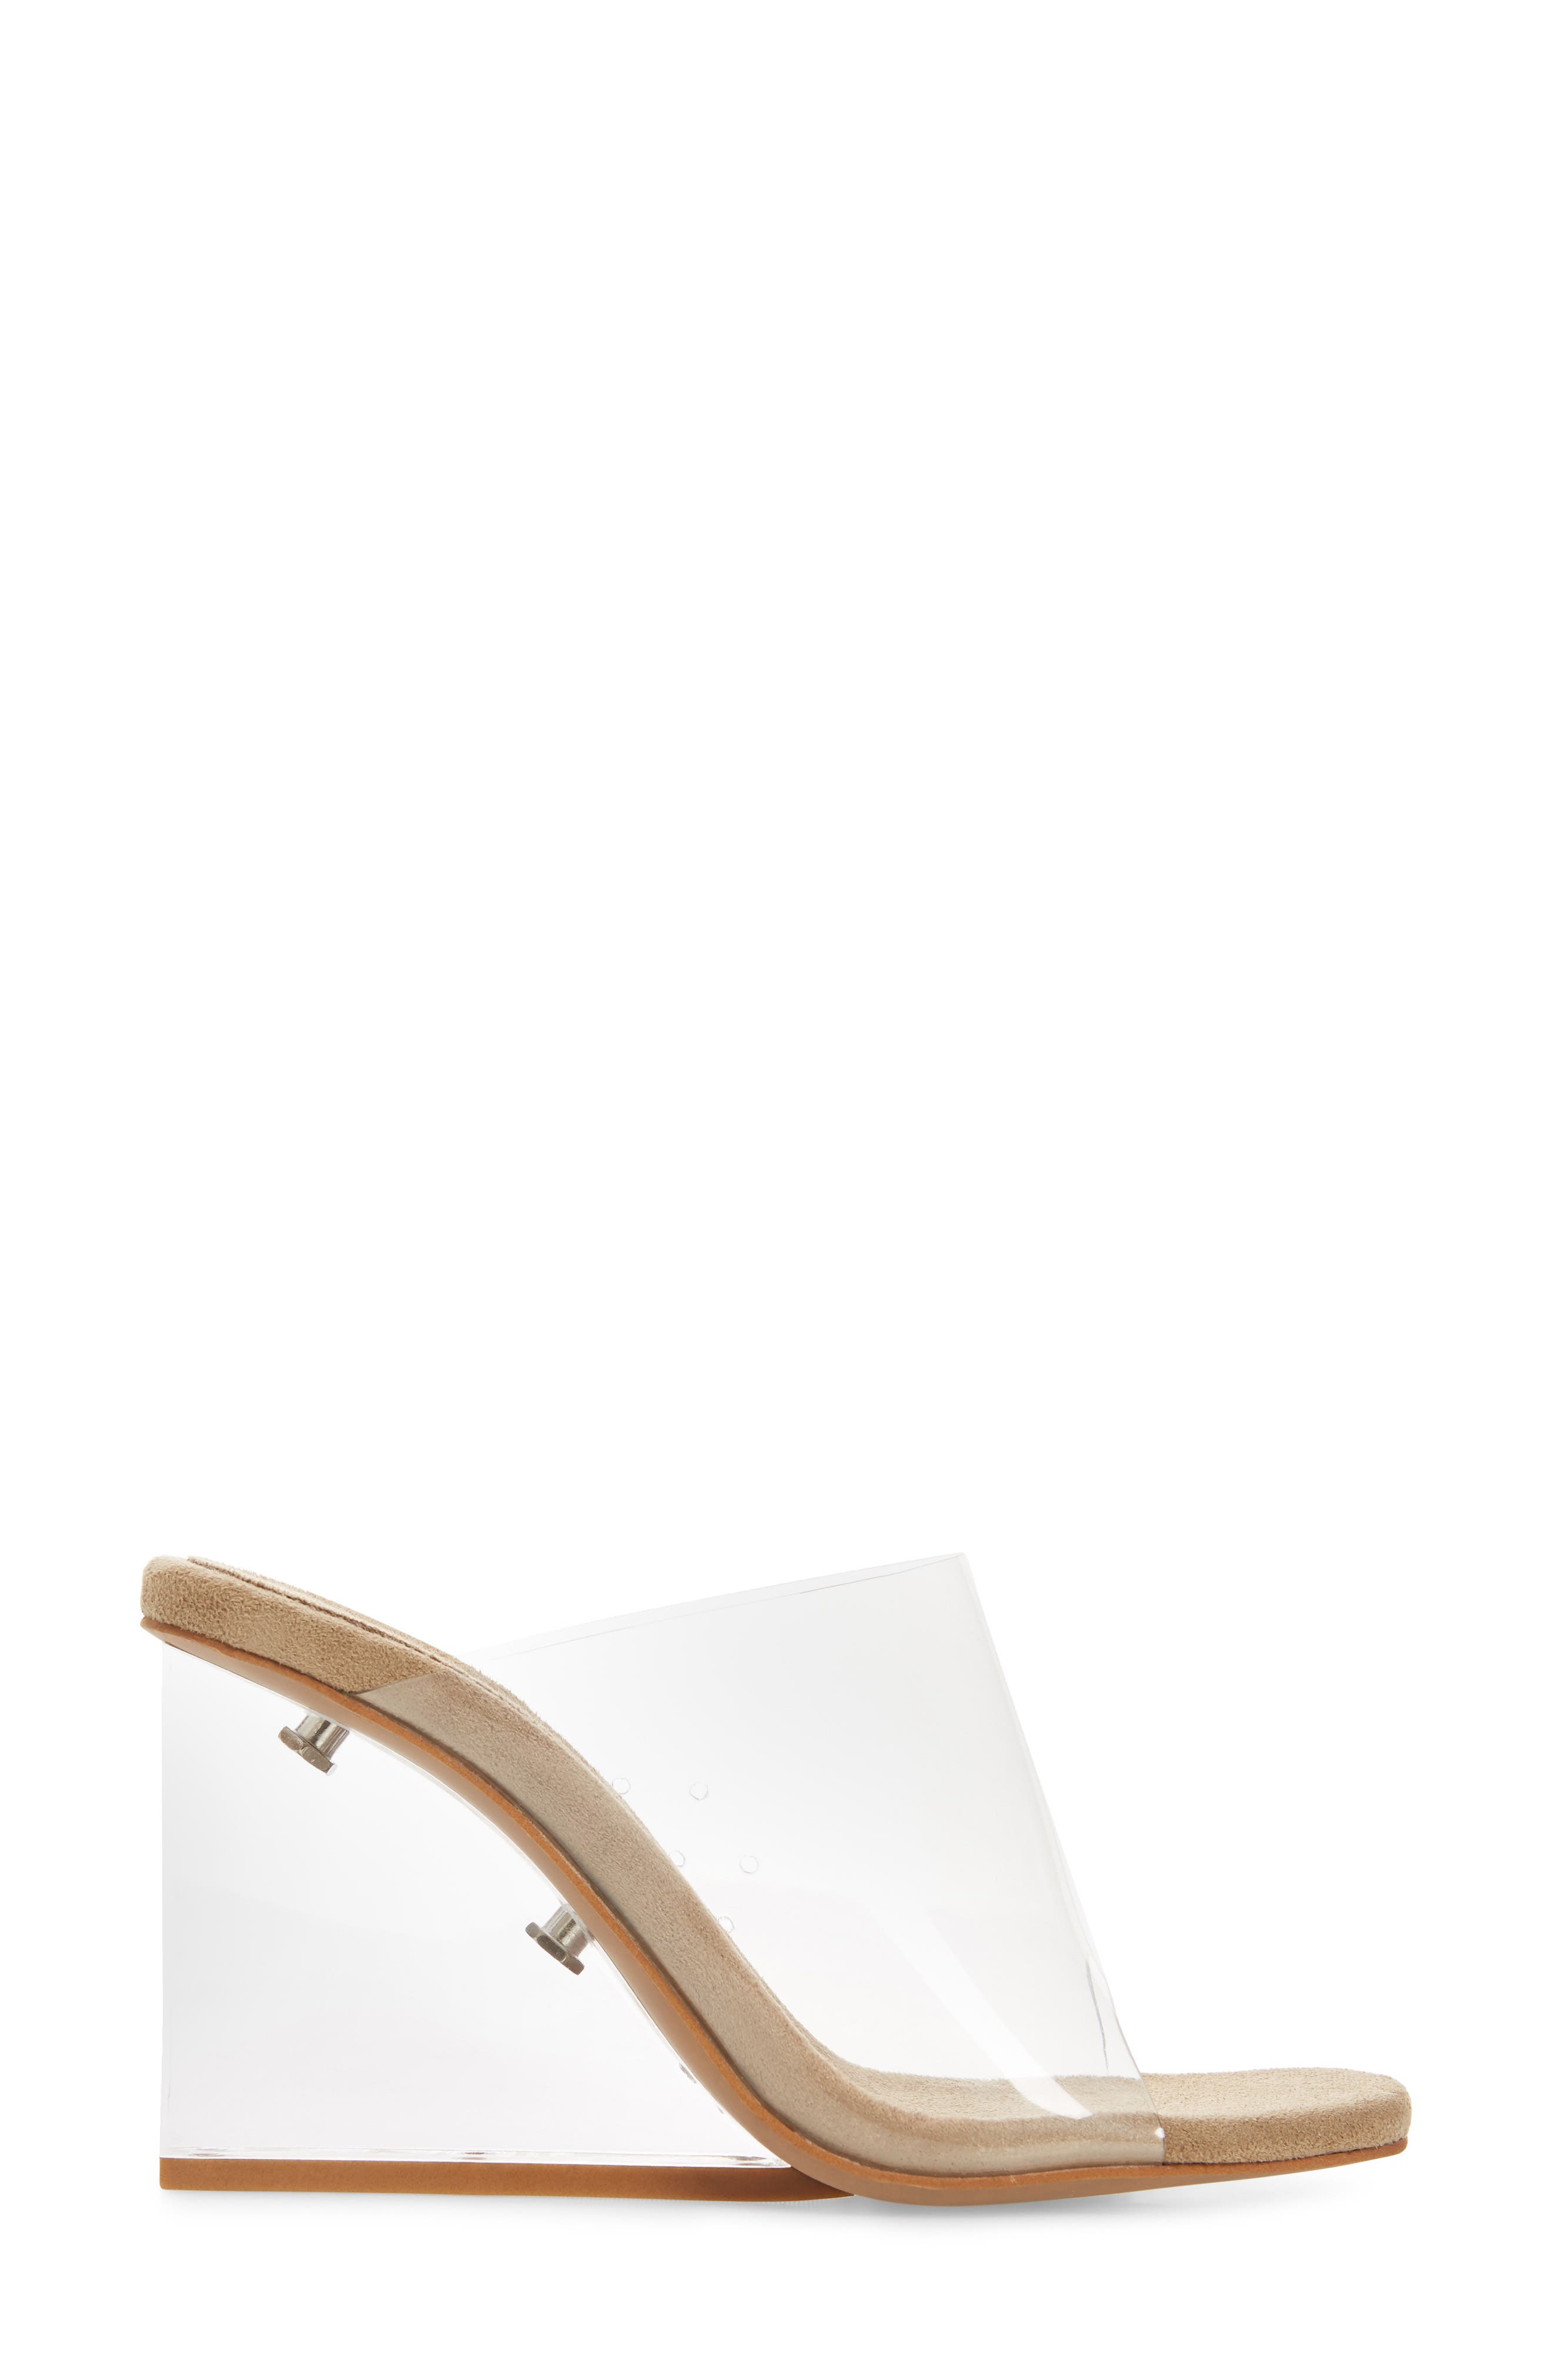 JEFFREY CAMPBELL, Clear Wedge Mule, Alternate thumbnail 3, color, CLEAR FAUX LEATHER